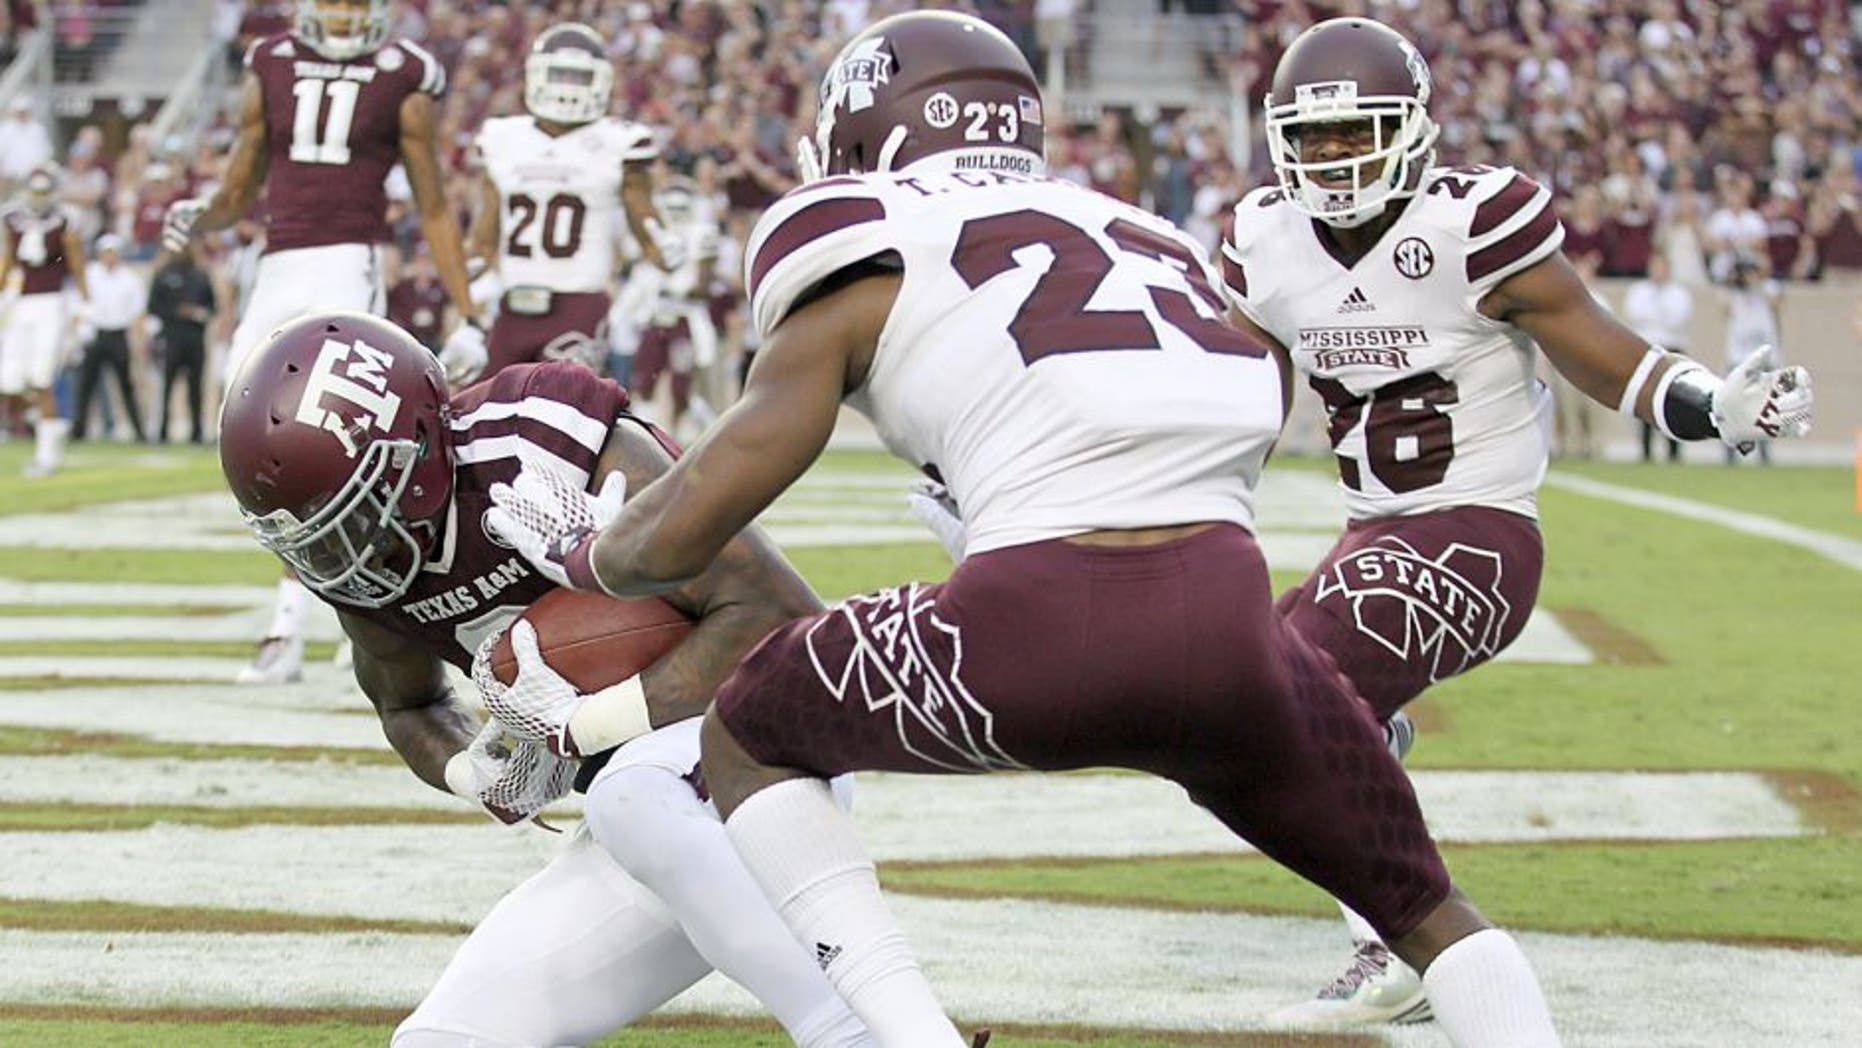 COLLEGE STATION, TX - OCTOBER 03: Ricky Seals-Jones #9 of the Texas A&M Aggies catches a touchdown pass while being defended by Taveze Calhoun #23 of the Mississippi State Bulldogs in the first quarter on October 3, 2015 at Kyle Field in College Station, Texas. (Photo by Thomas B. Shea/Getty Images)